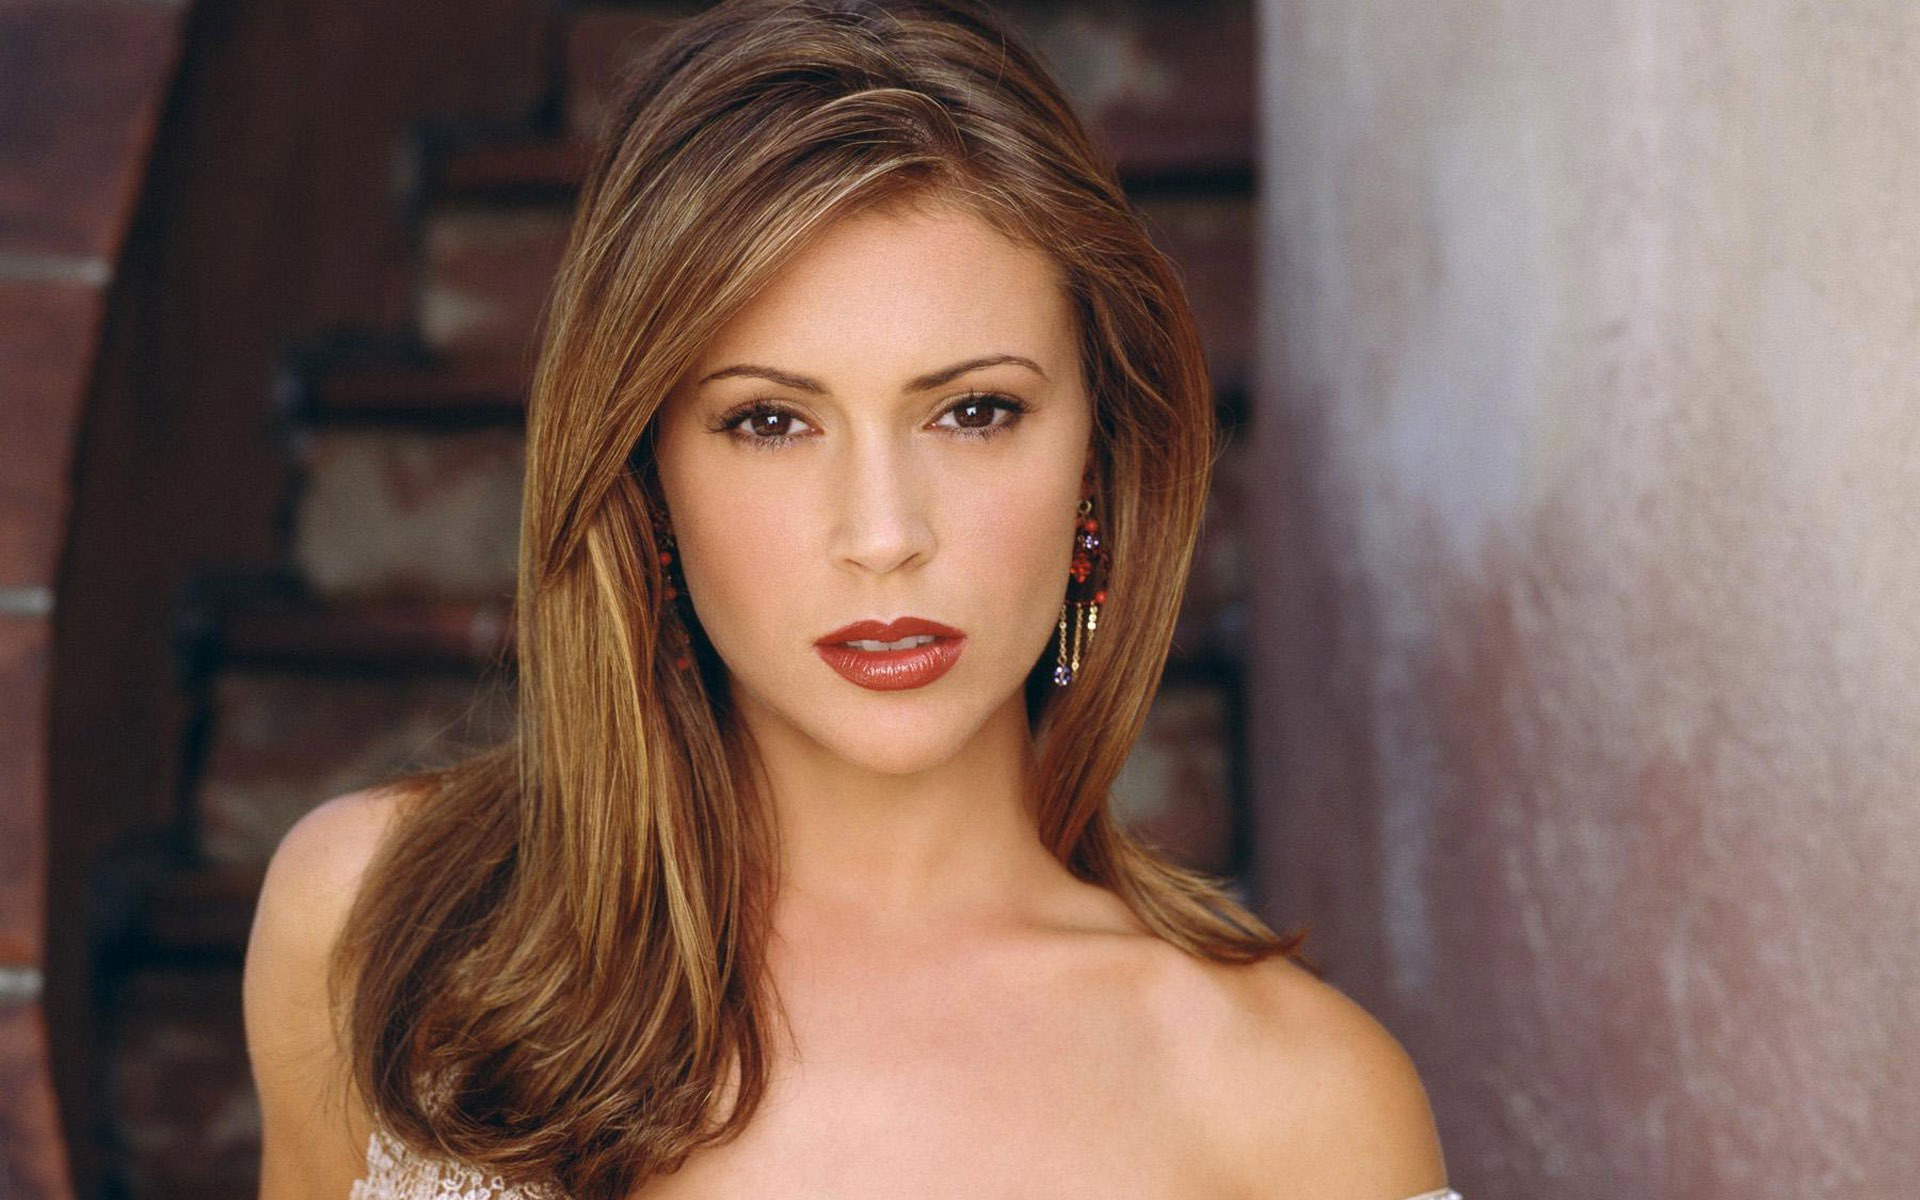 Alyssa milano wallpapers images photos pictures backgrounds for Wallpaper milano